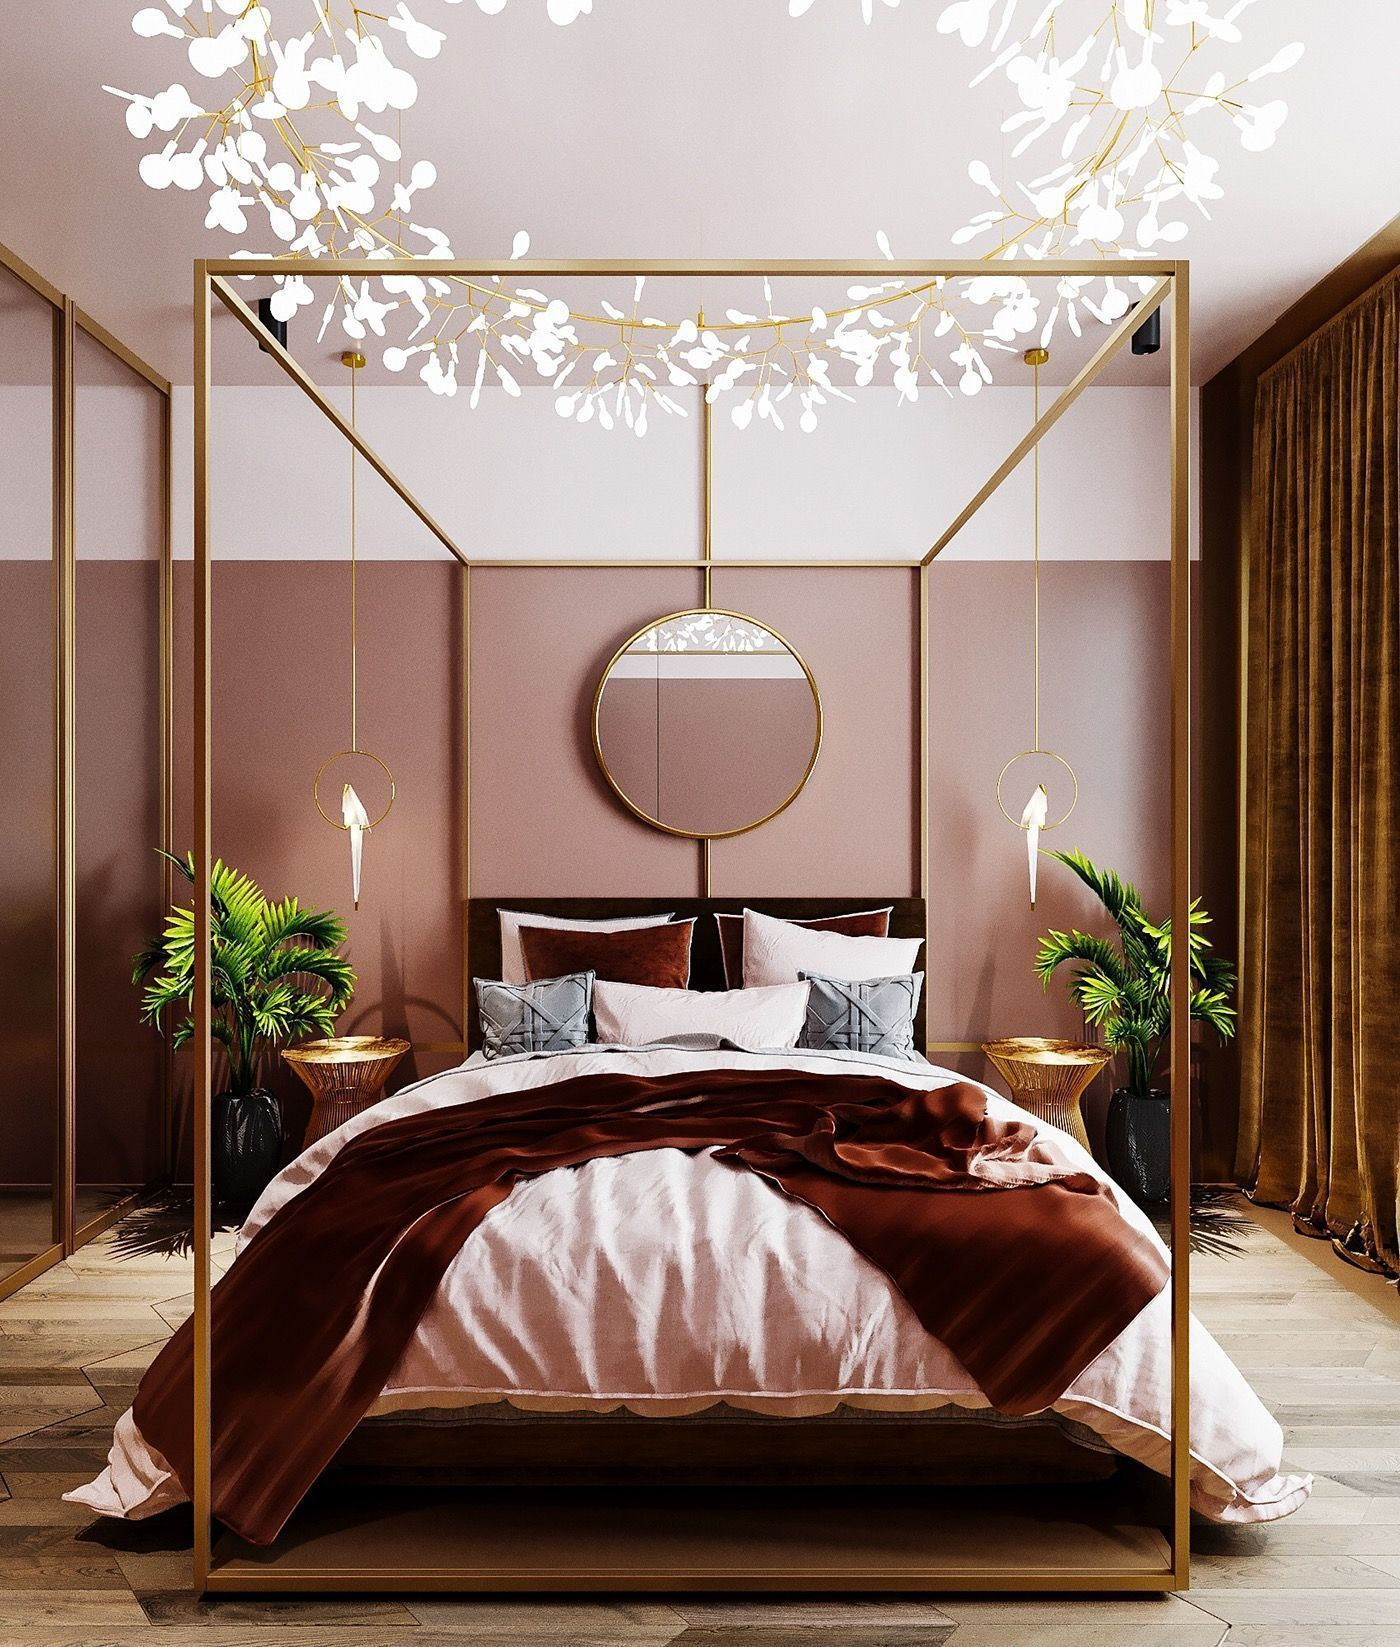 Add Our Bedroom Decor Ideas To Your Wish List And Get The